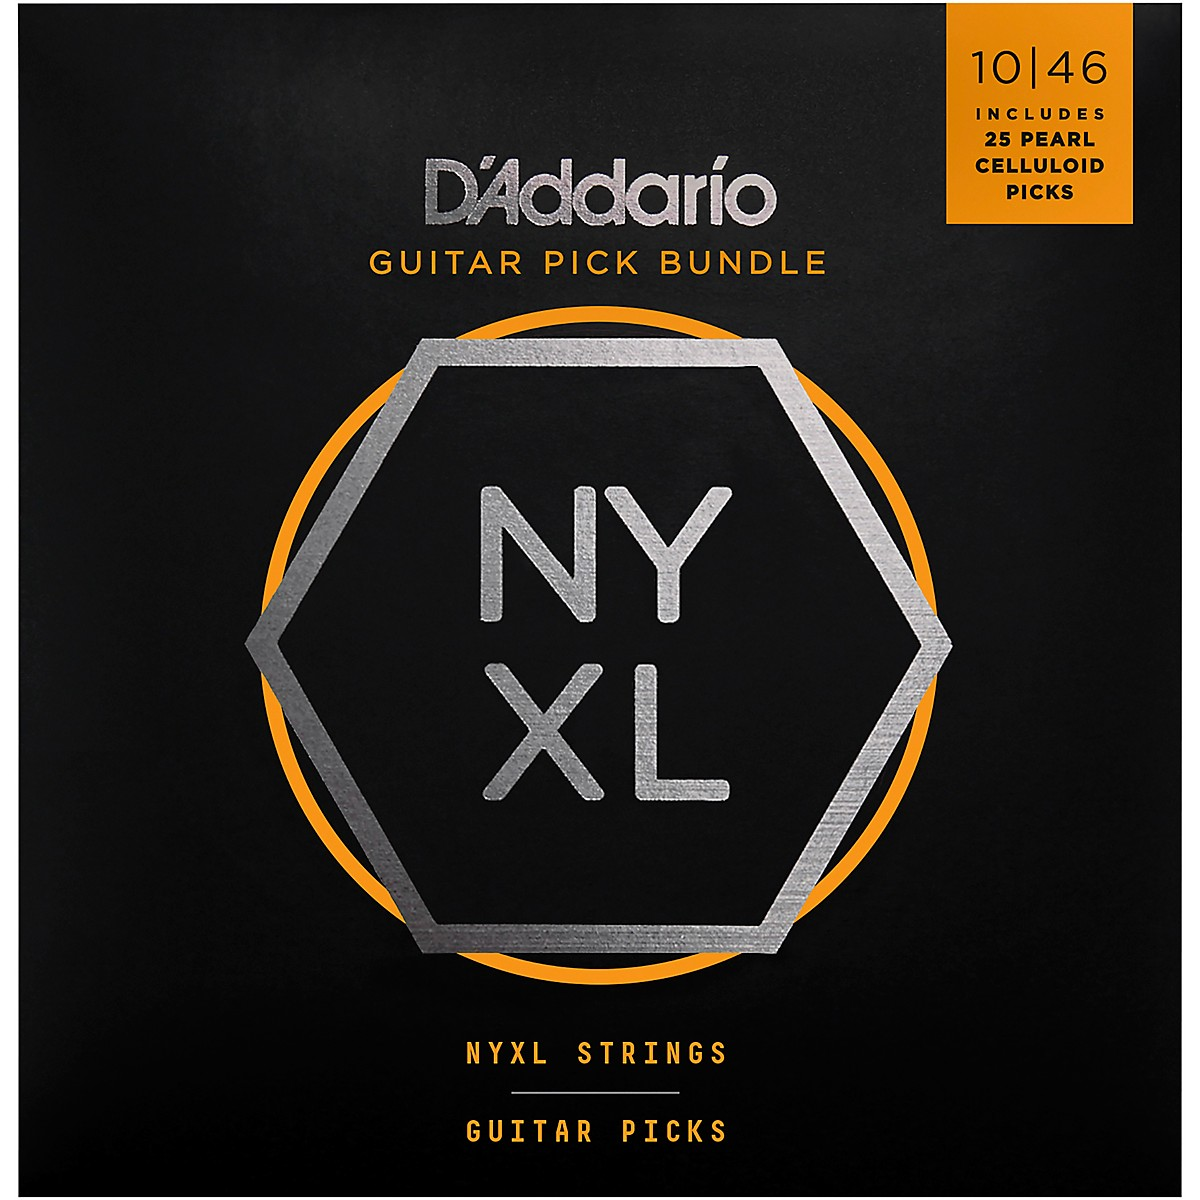 D'Addario NYXL Electric Guitar Strings with 25 Celluloid Picks